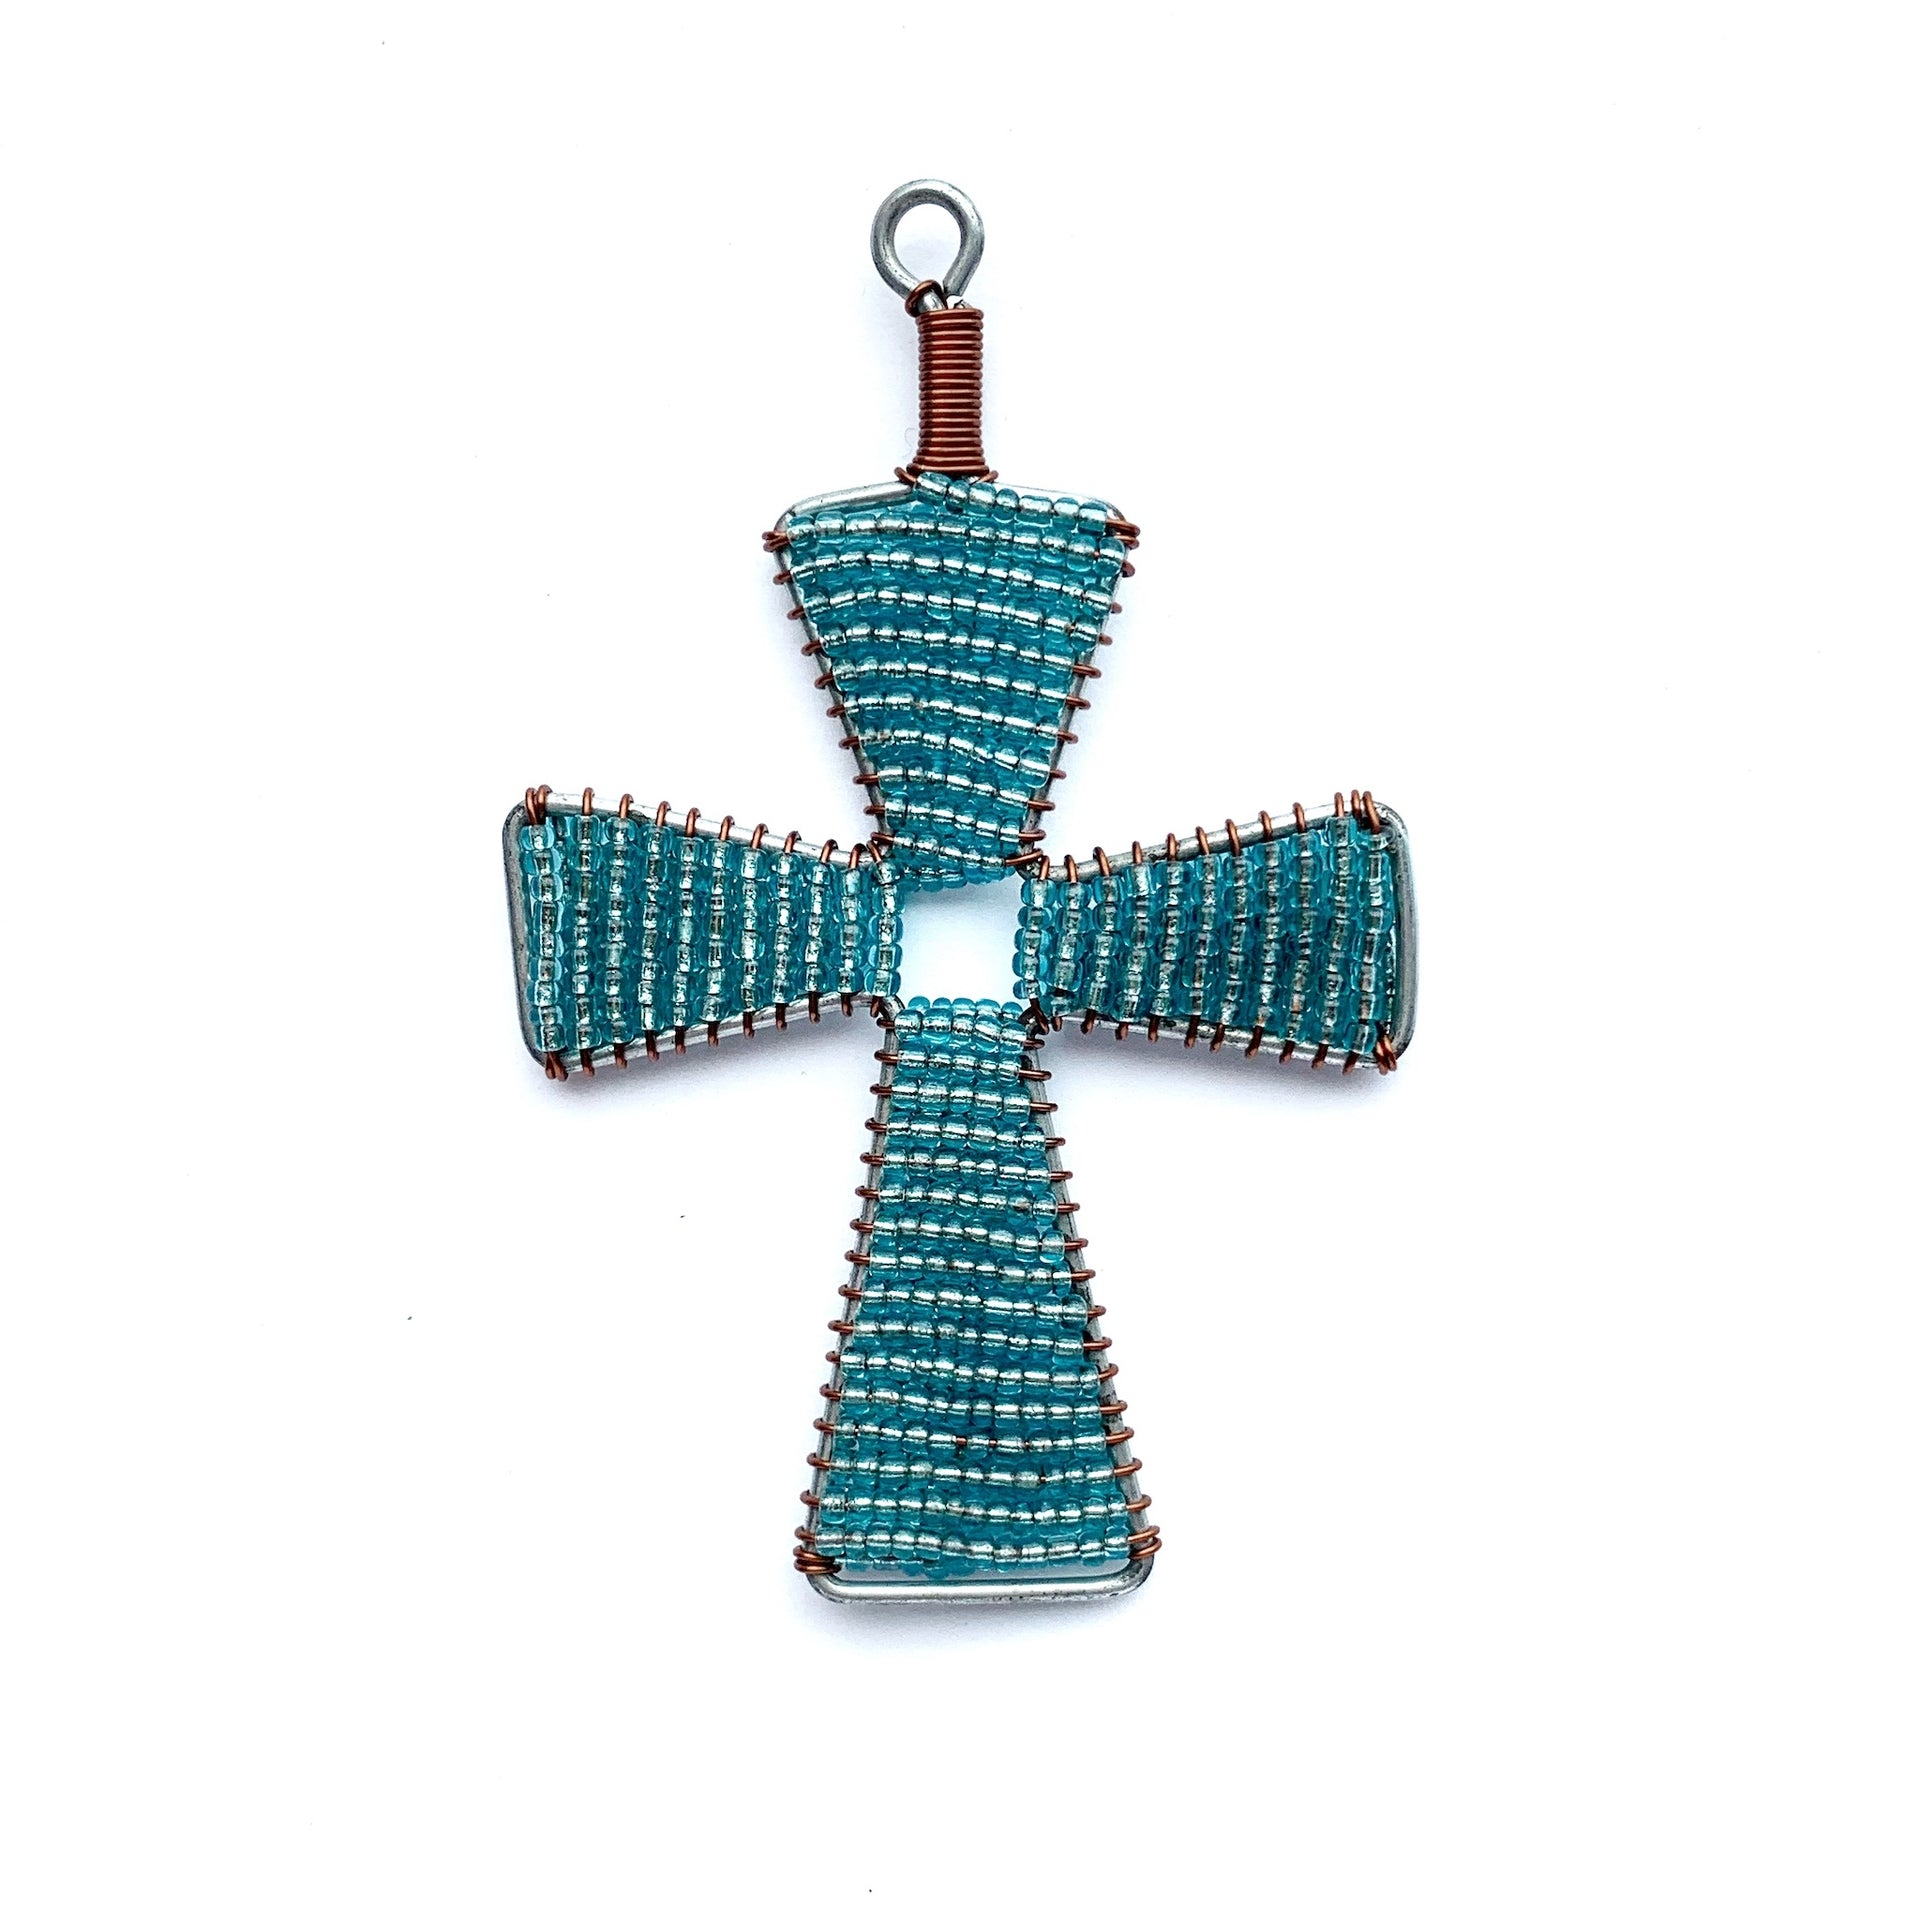 Light Blue Cross Fair Trade Glass Bead Christmas Ornament Handmade